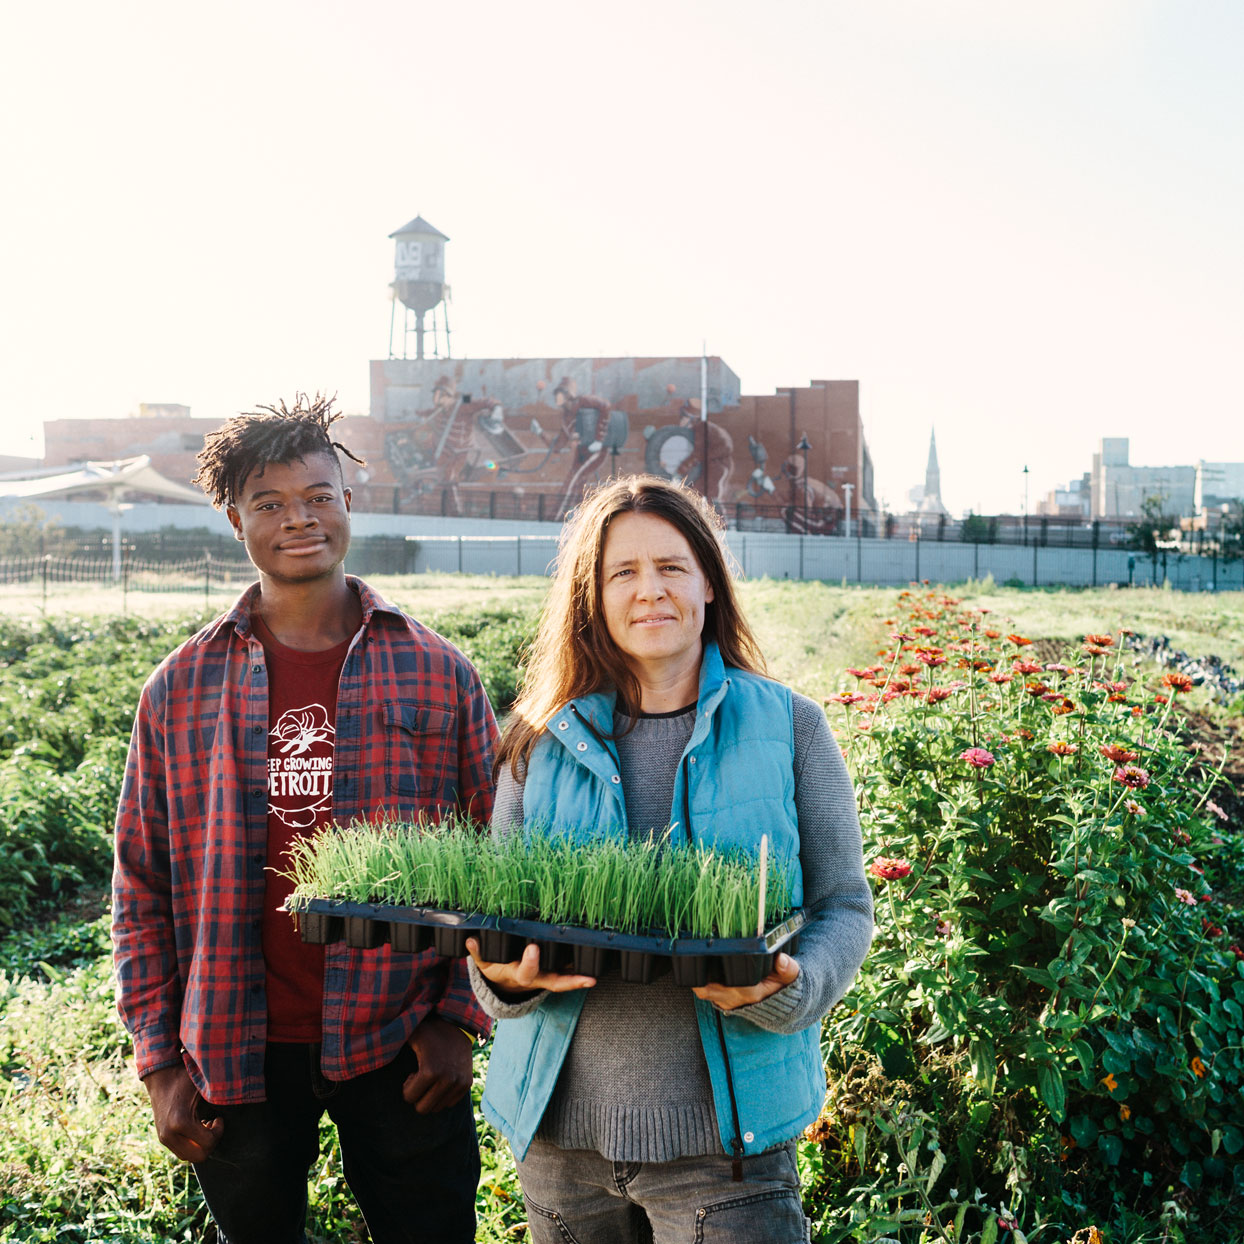 https://www.eatingwell.com/article/7825500/this-organization-is-transforming-detroit-neighborhoods-one-garden-at-a-time/ja20-fwp/